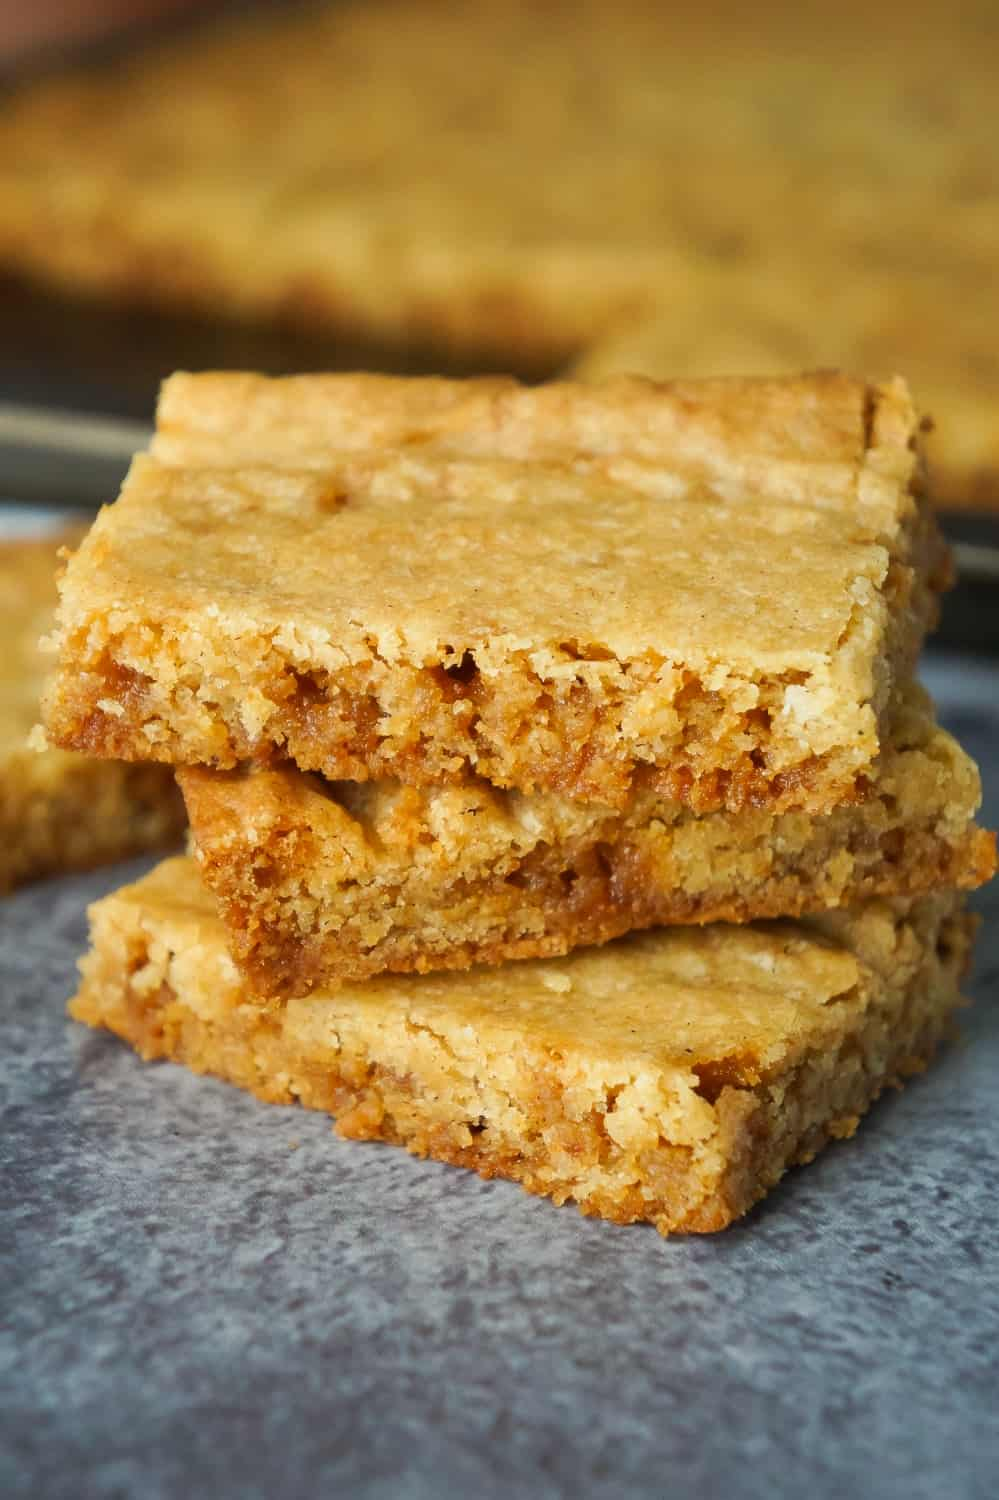 Pumpkin Spice Pudding Sugar Cookie Bars are an easy fall dessert recipe. These simple sugar cookie bars are made with Betty Crocker sugar cookie mix, pumpkin pie spice and toffee bits.